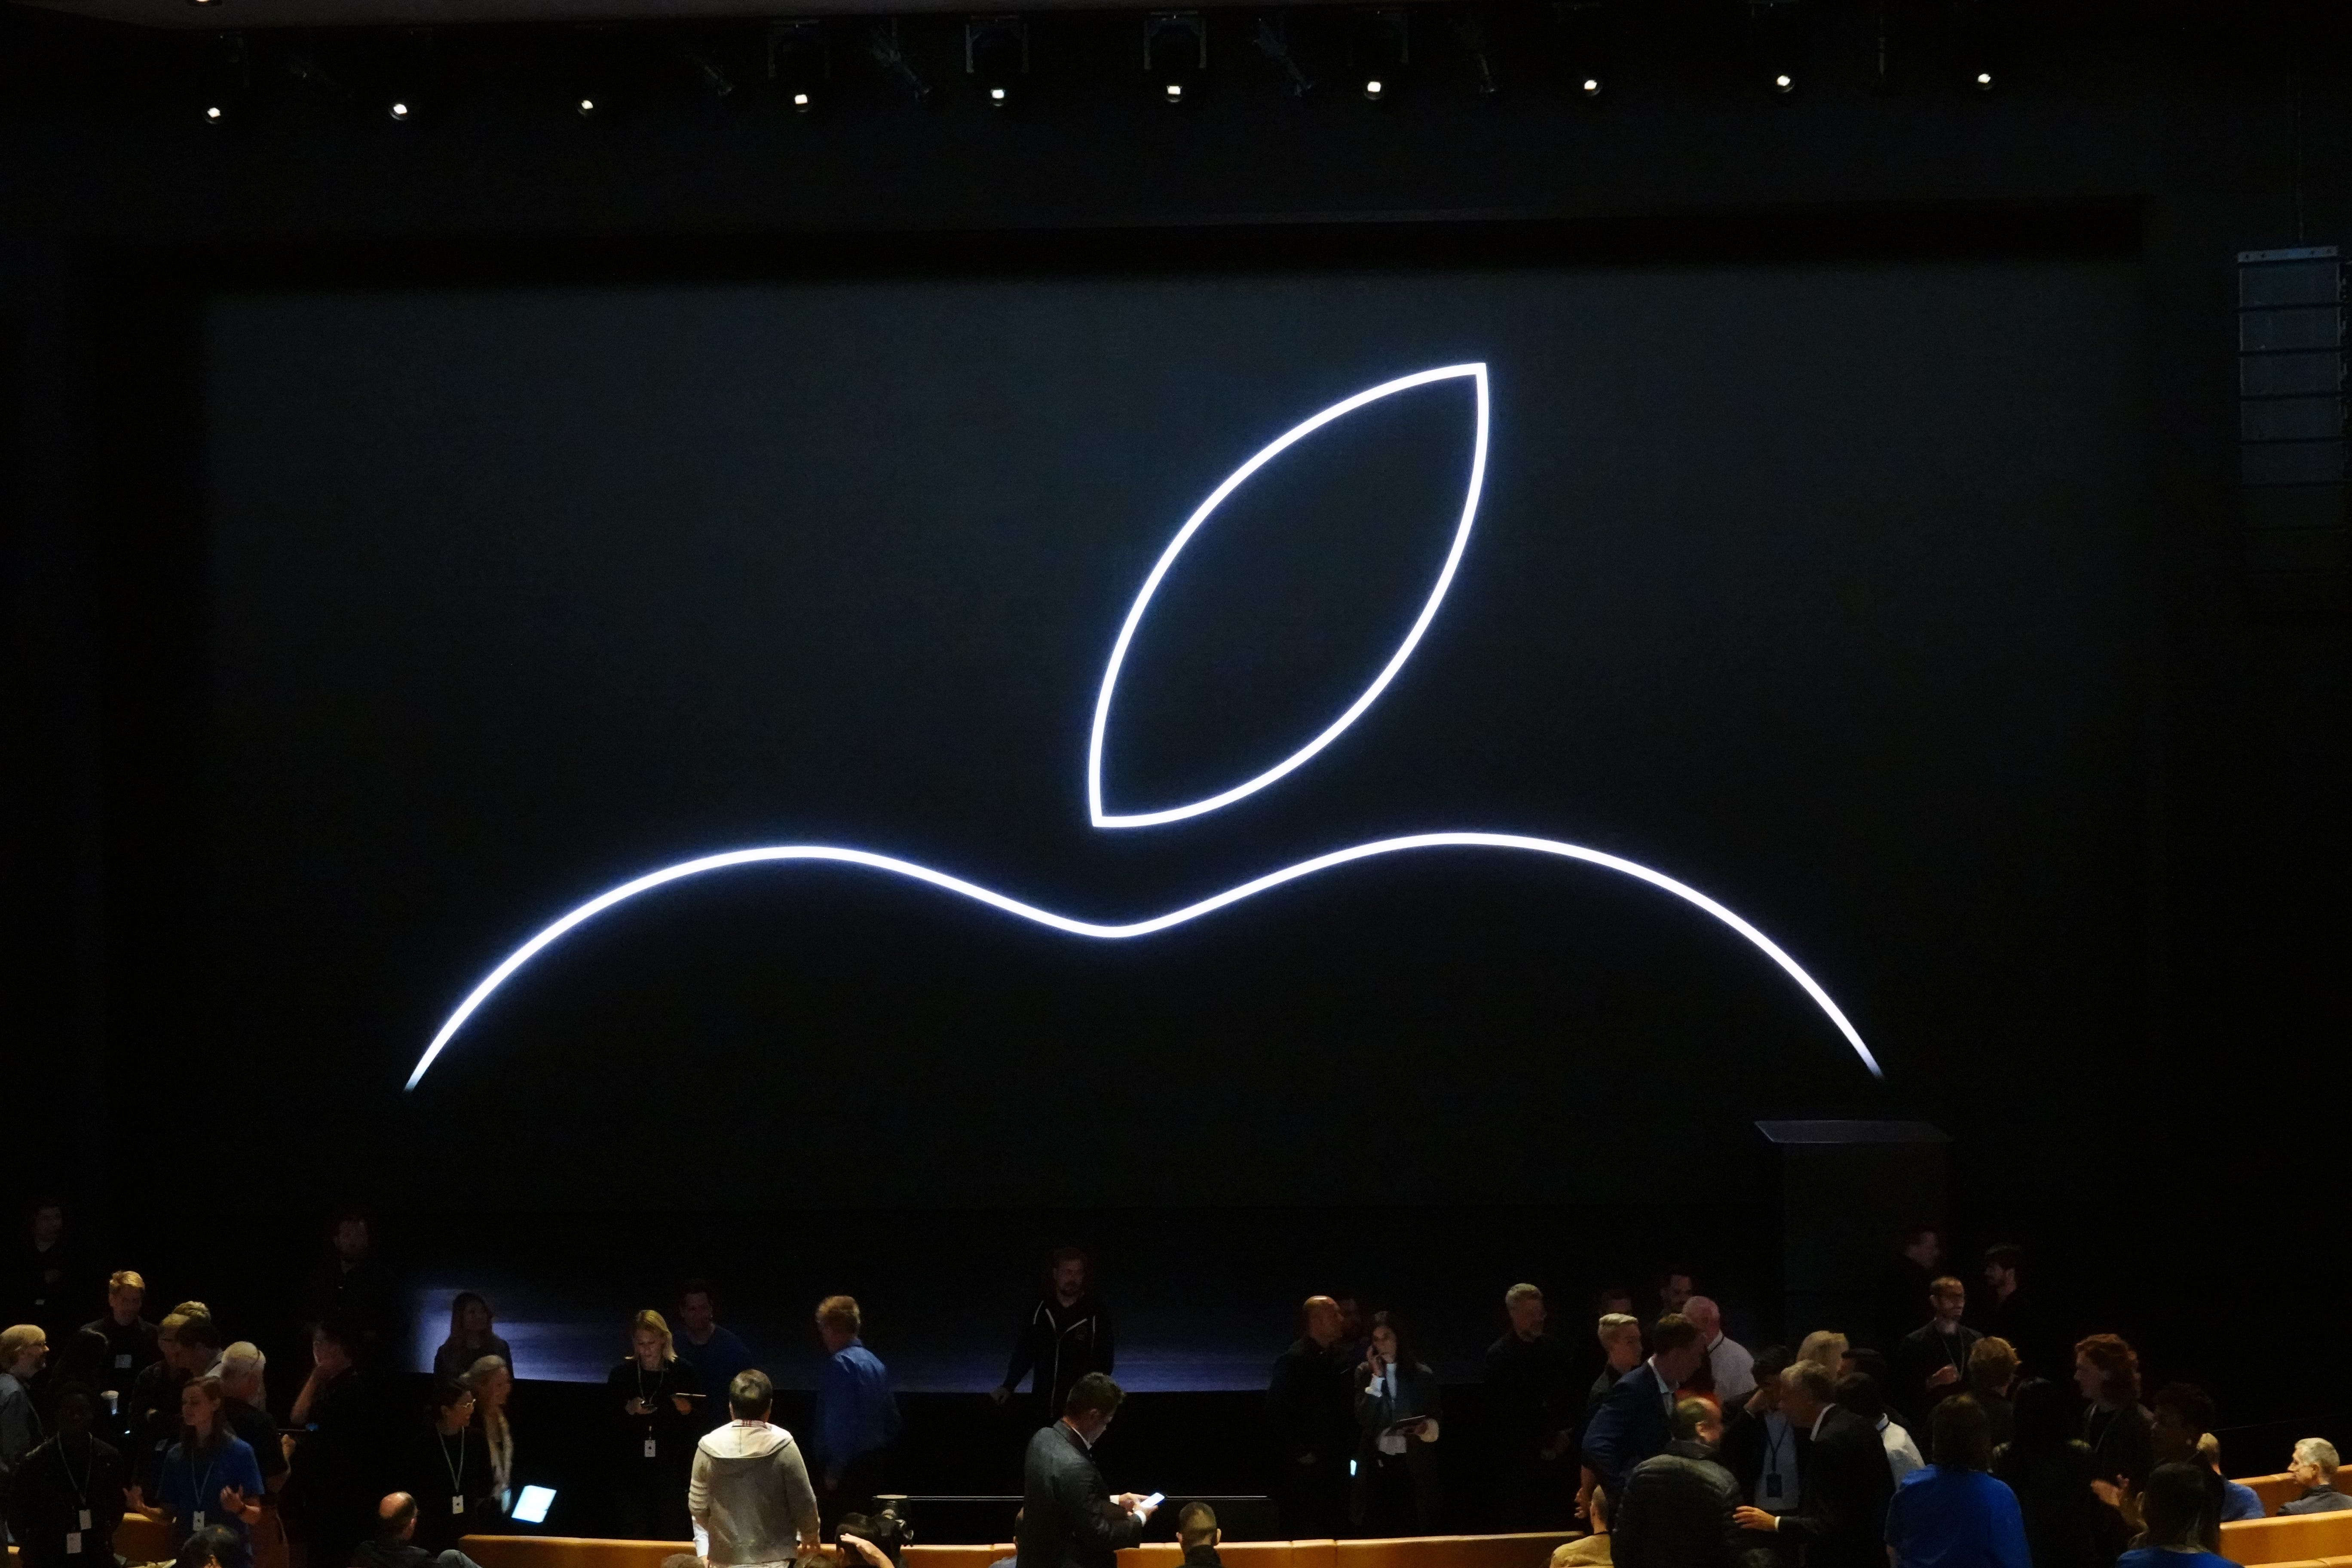 Apple S Next Iphone Event Expected To Be Virtual Samsung S Is Aug 5